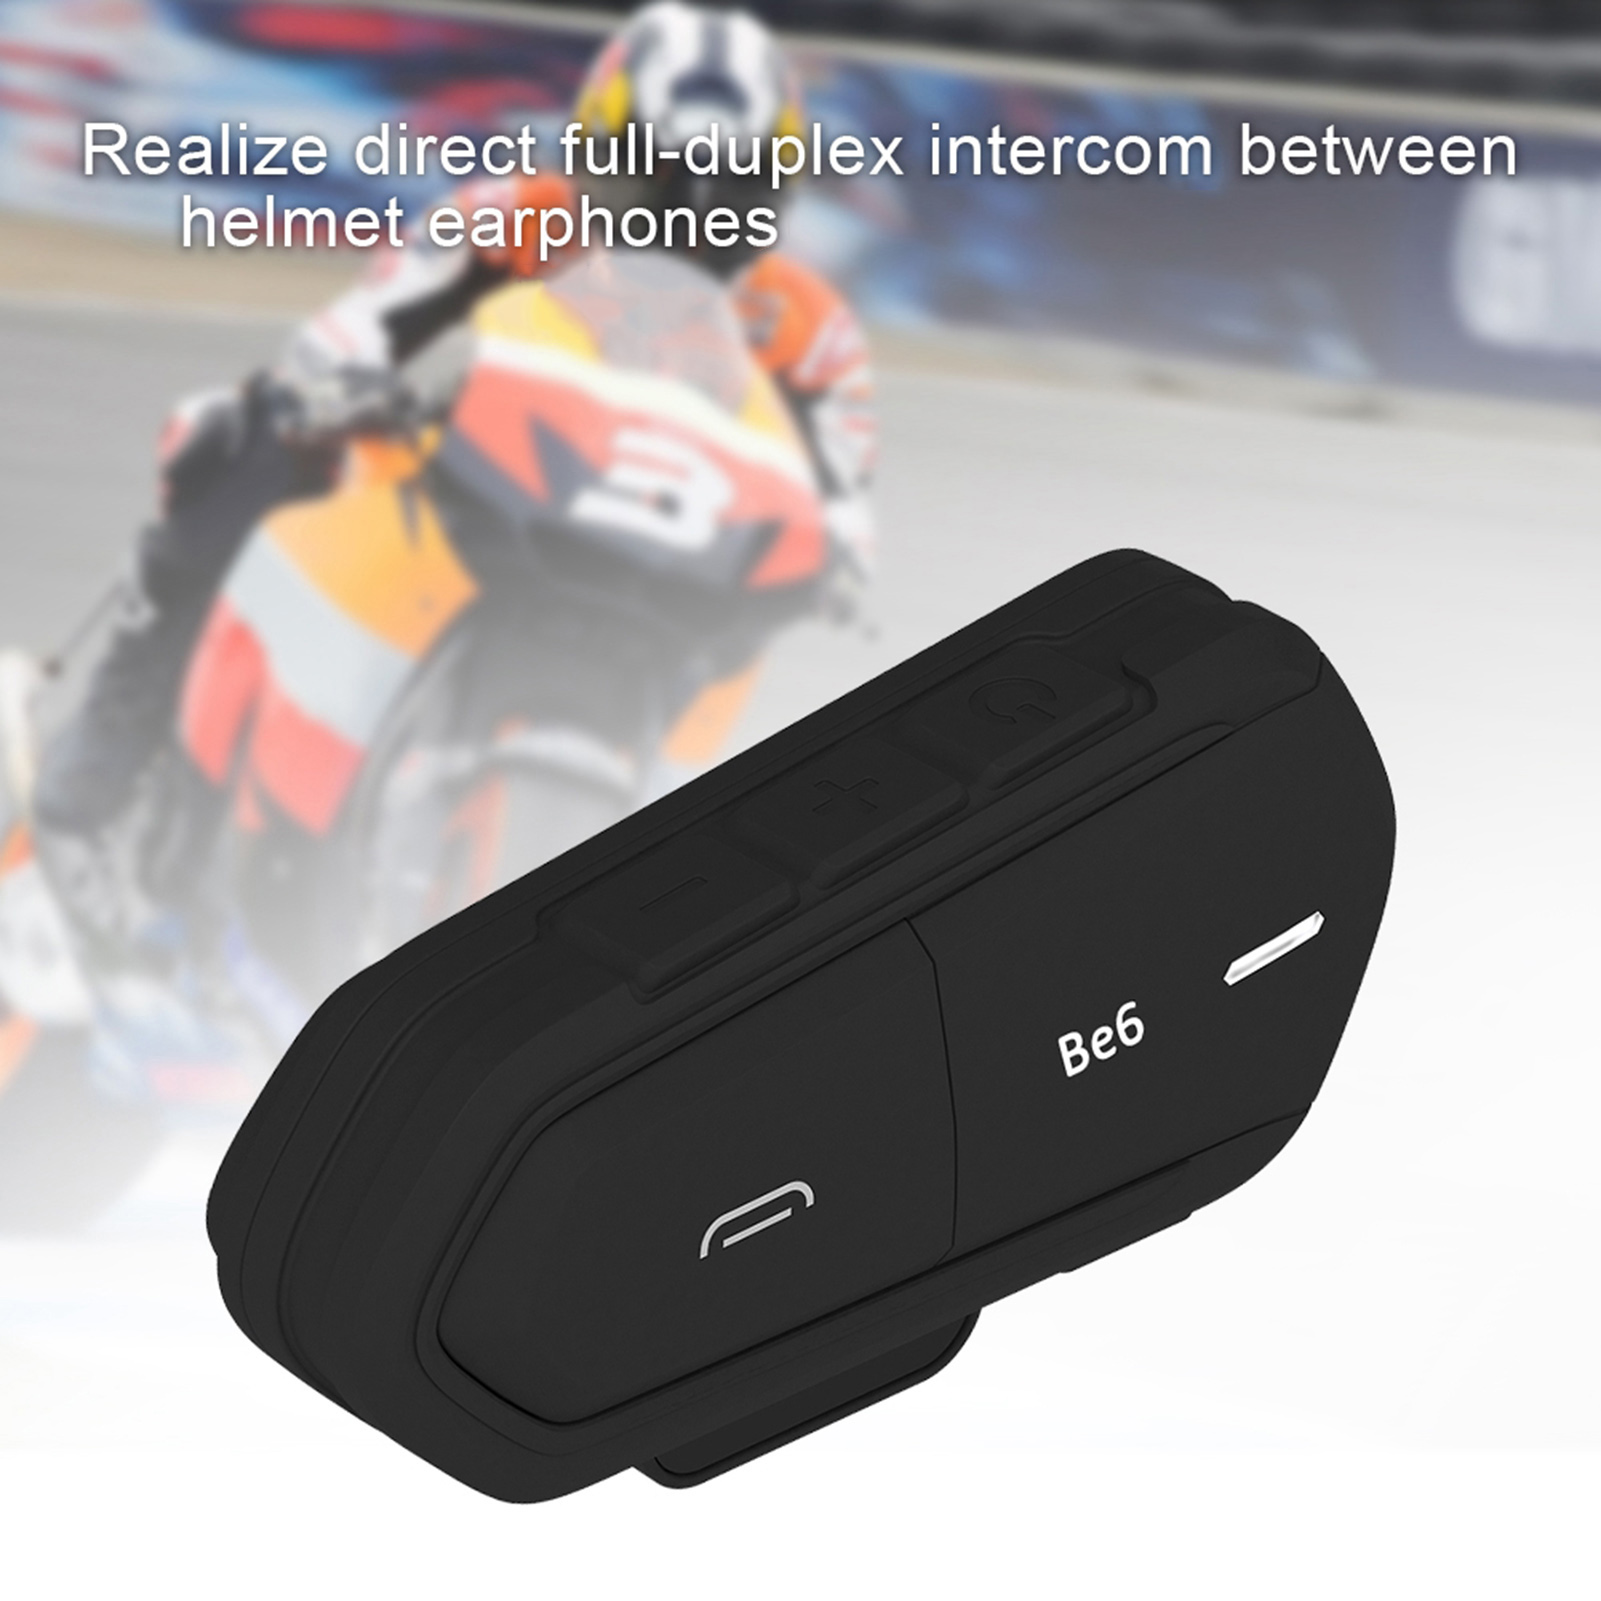 Wireless-Bluetooth-Helmet-Interphone-Earphone-Long-Distance-FM-Helmet-Headset miniature 13